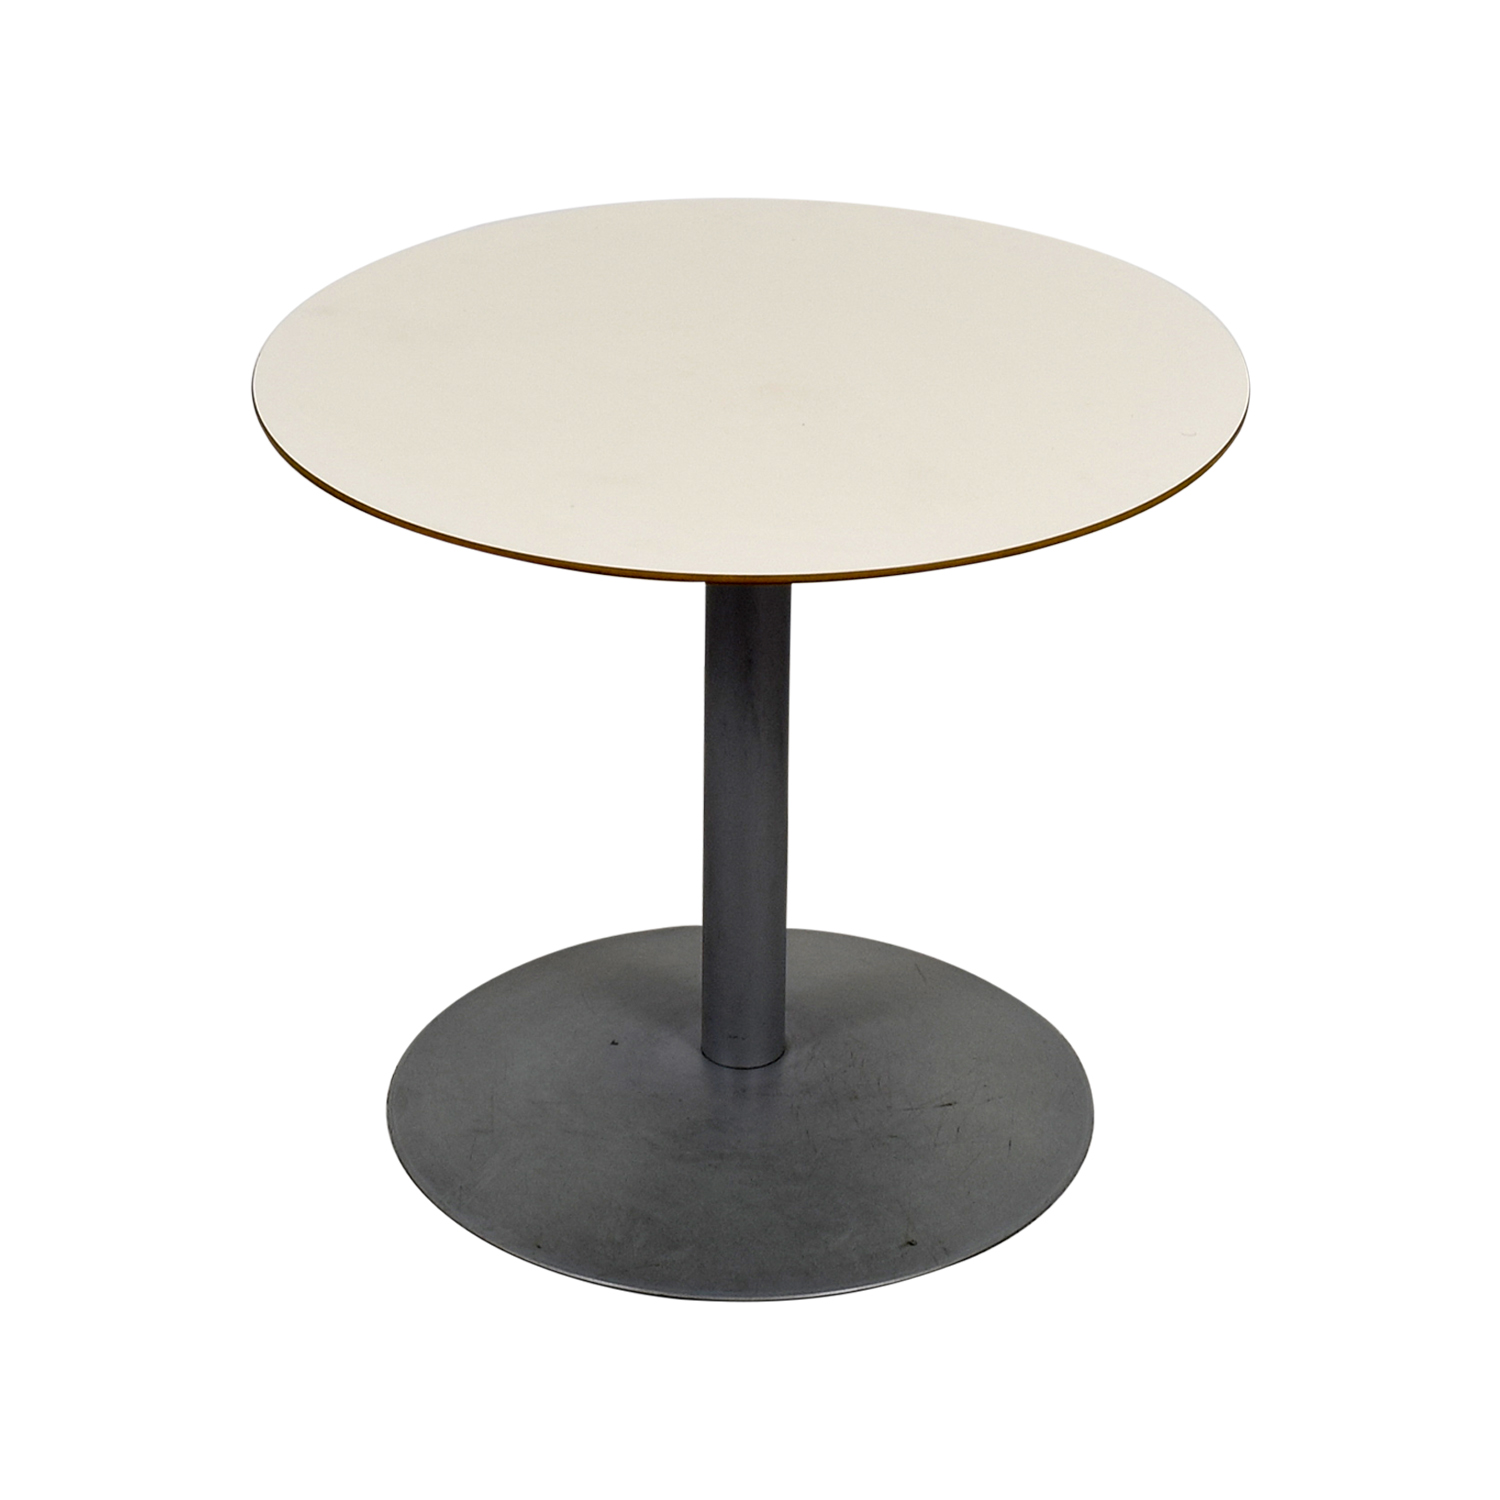 White Round Table with Pedestal Base nj